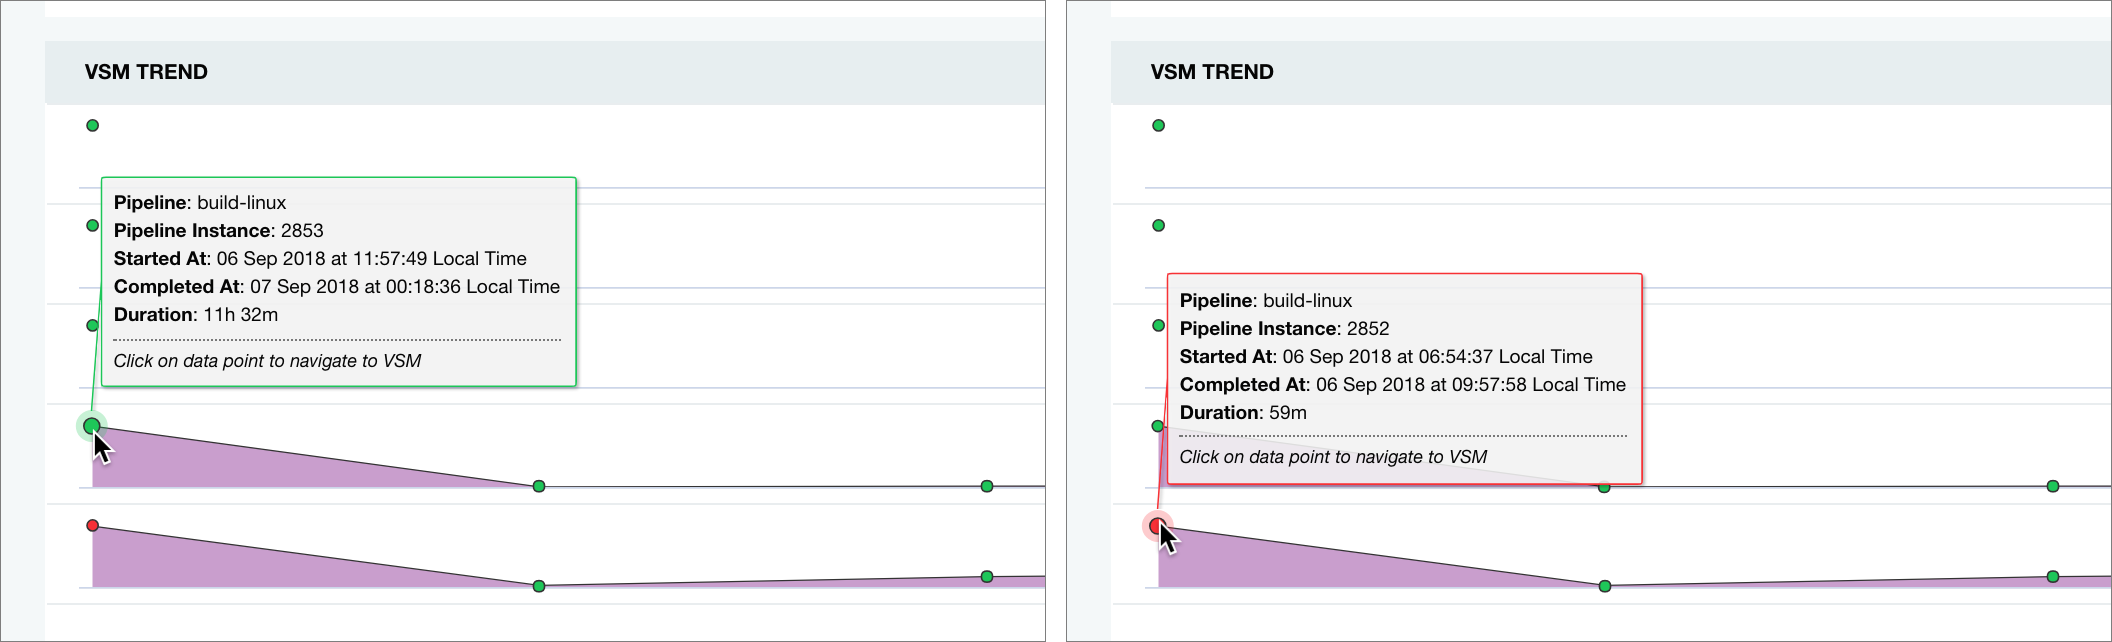 VSM Analytics: Cannot compare across trend lines